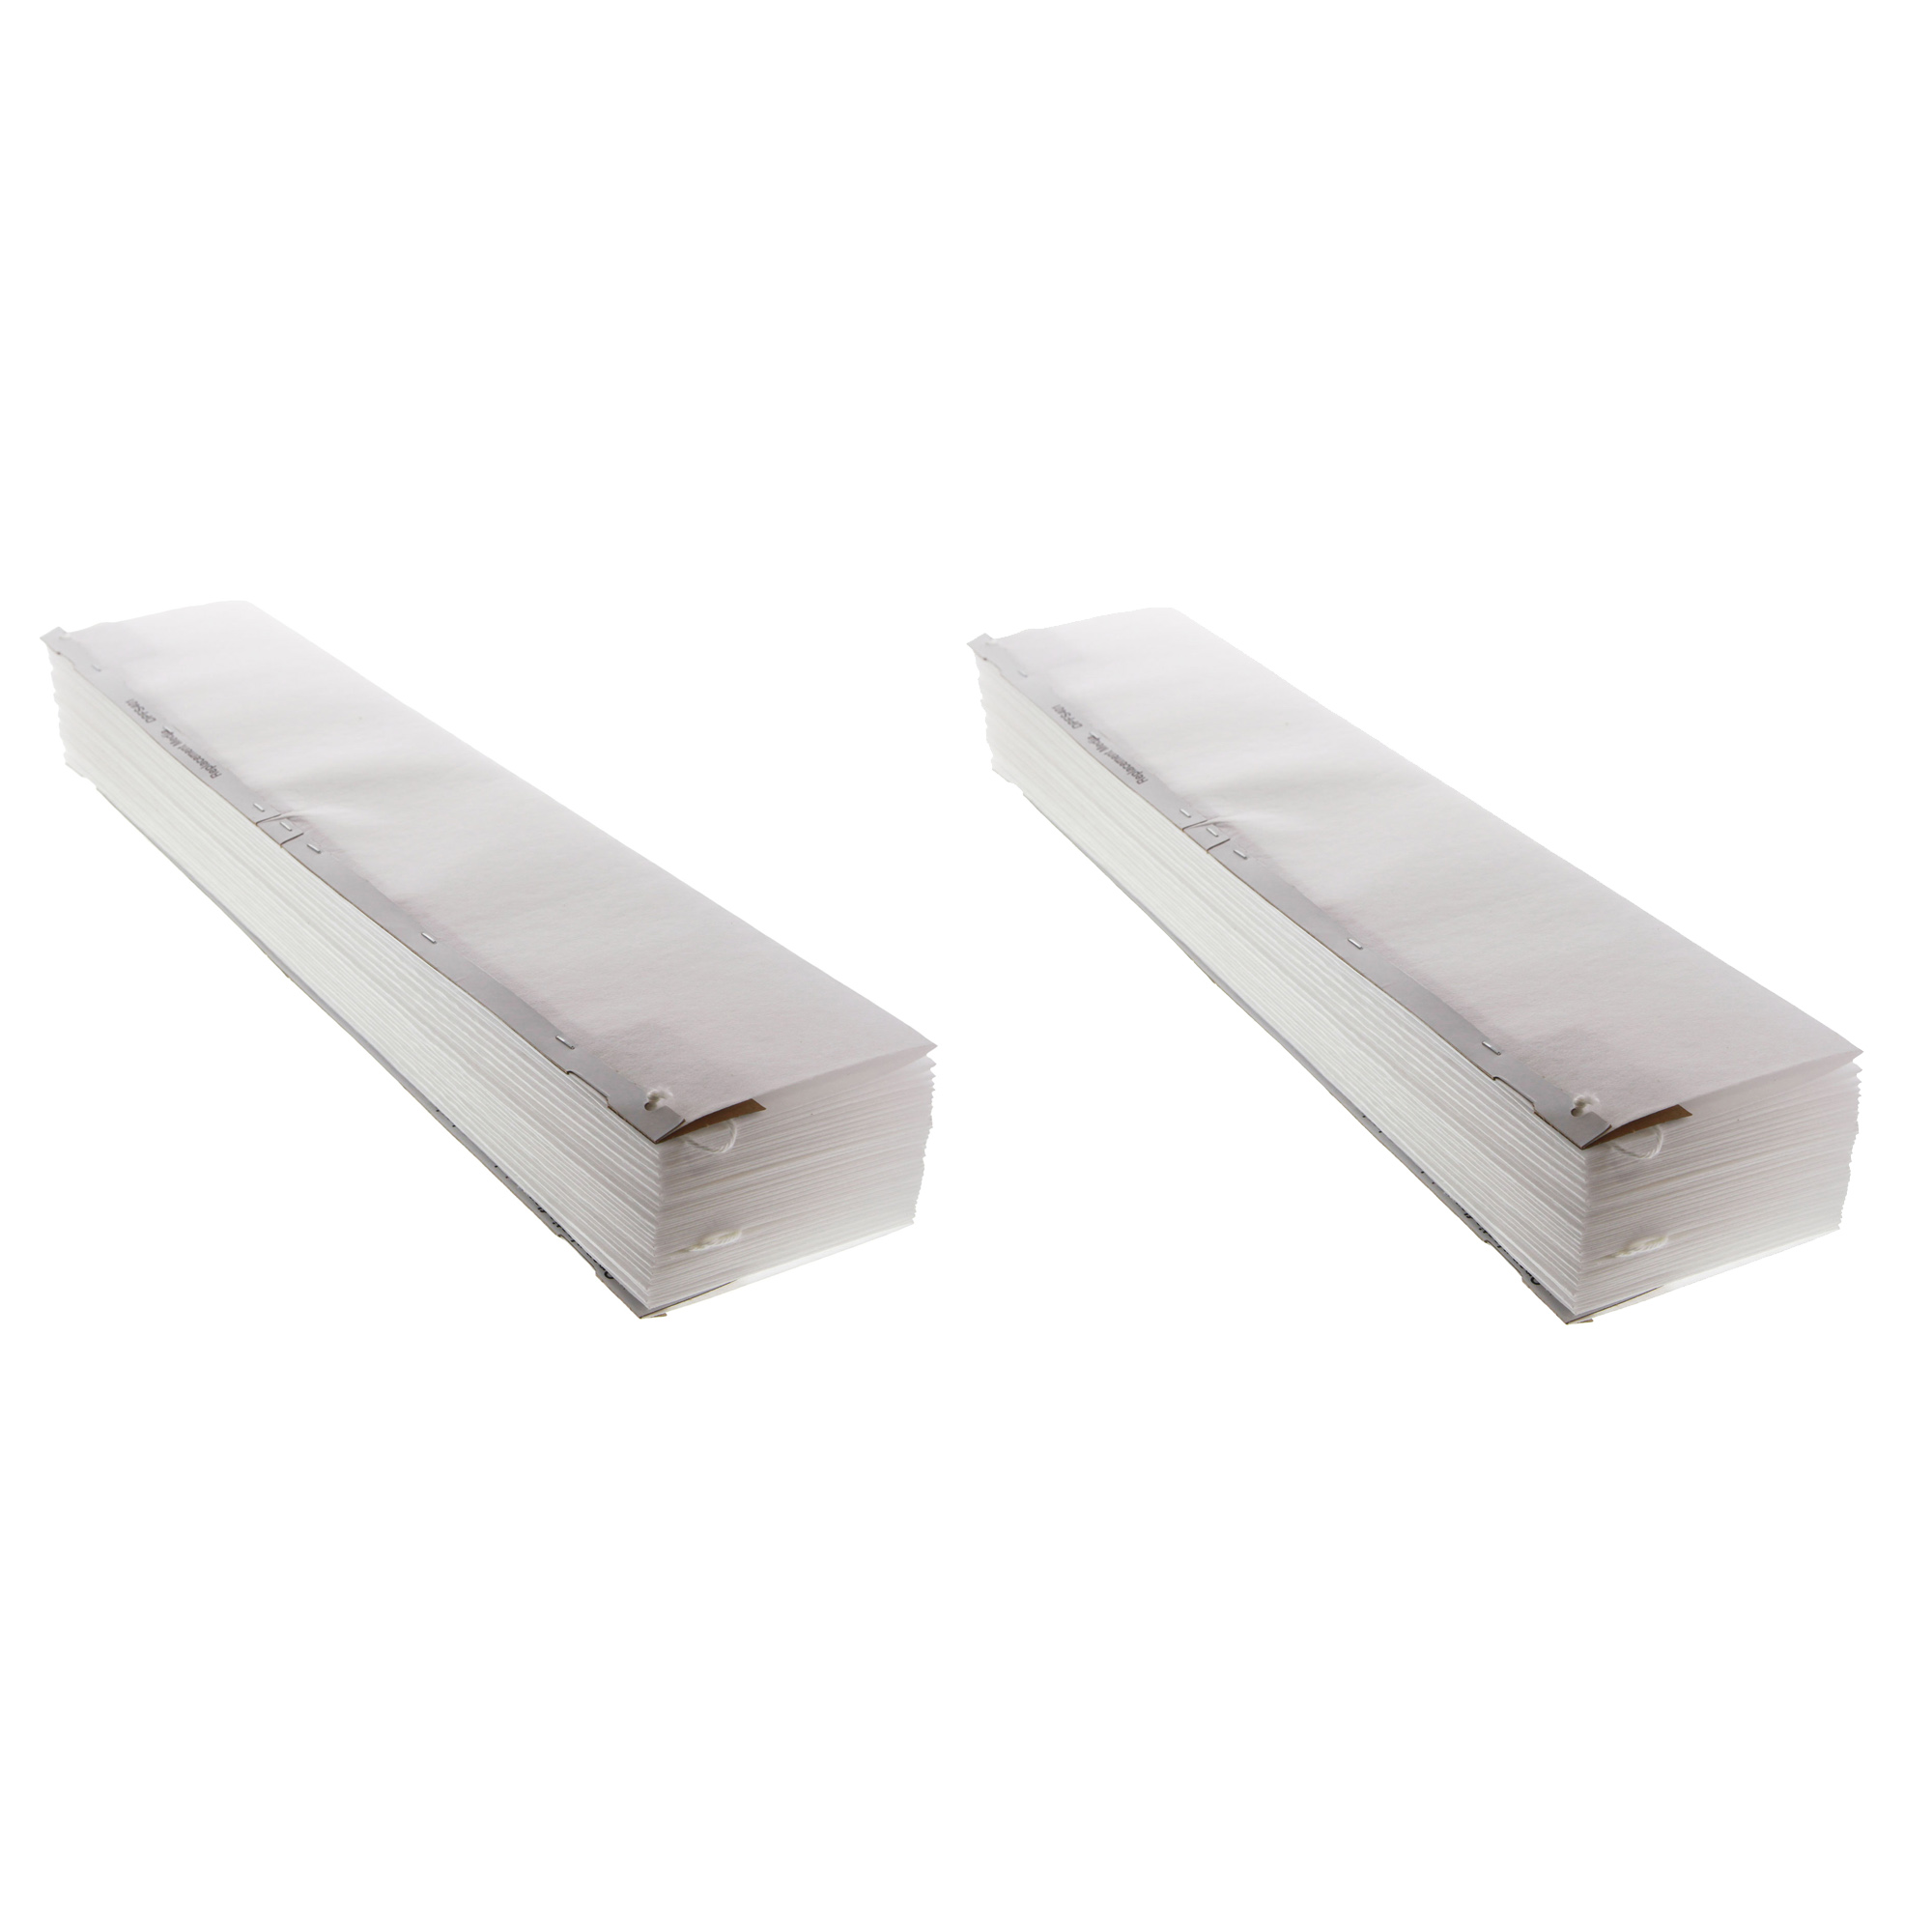 401 Aprilaire Comparable Replacement by Tier1 (2-Pack) TIER1-RAF-A401-2PK